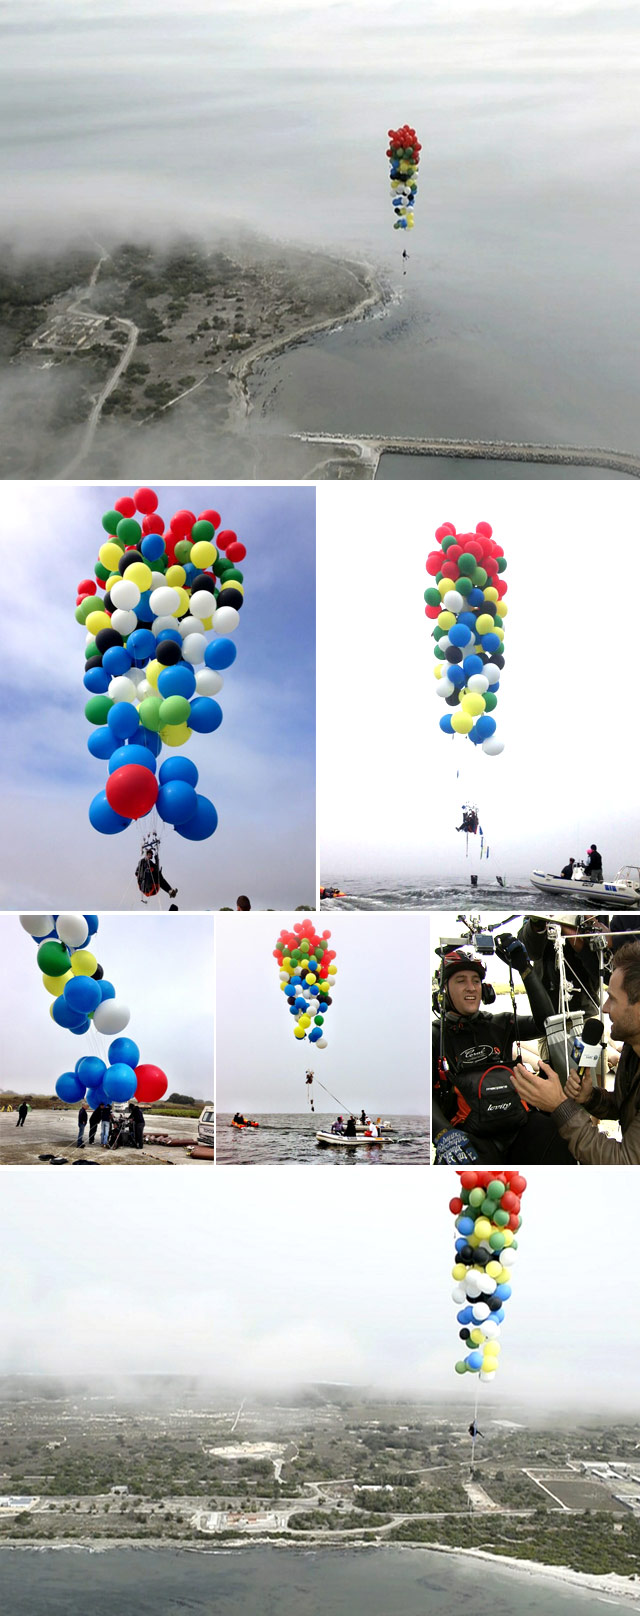 The Balloon Man on Top Billing